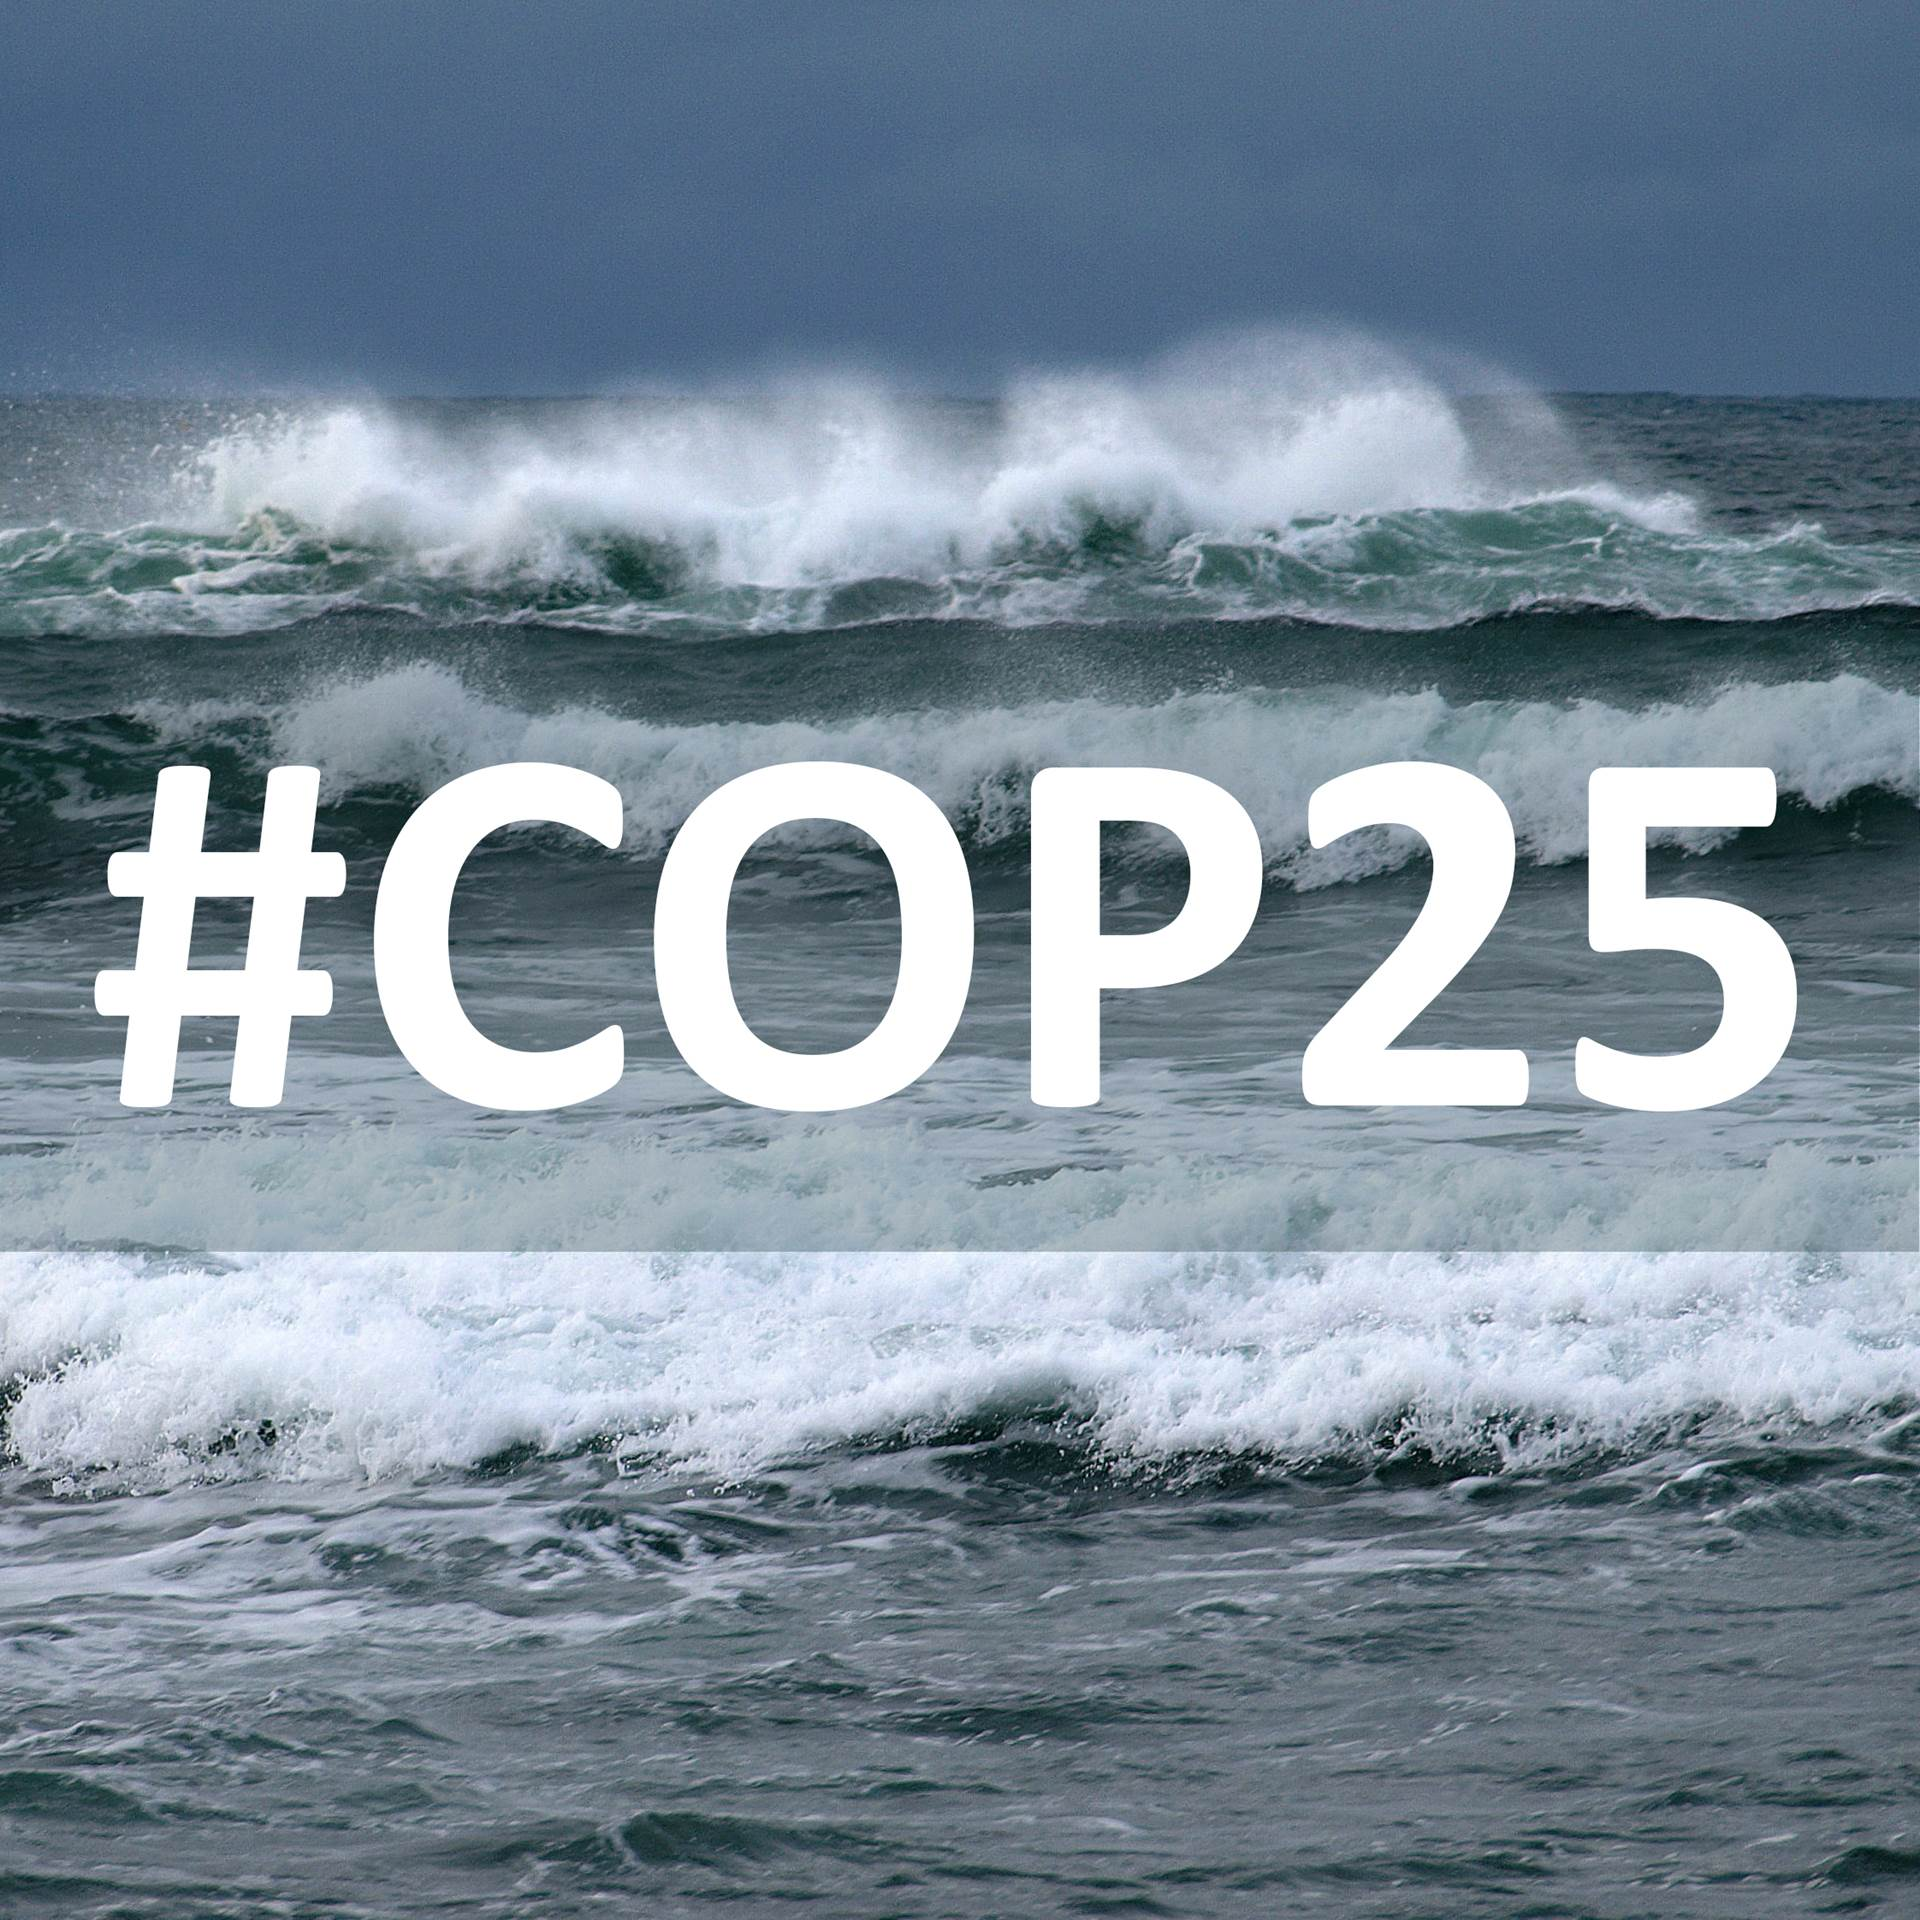 Arctic Council to host side event at COP25 - mynd